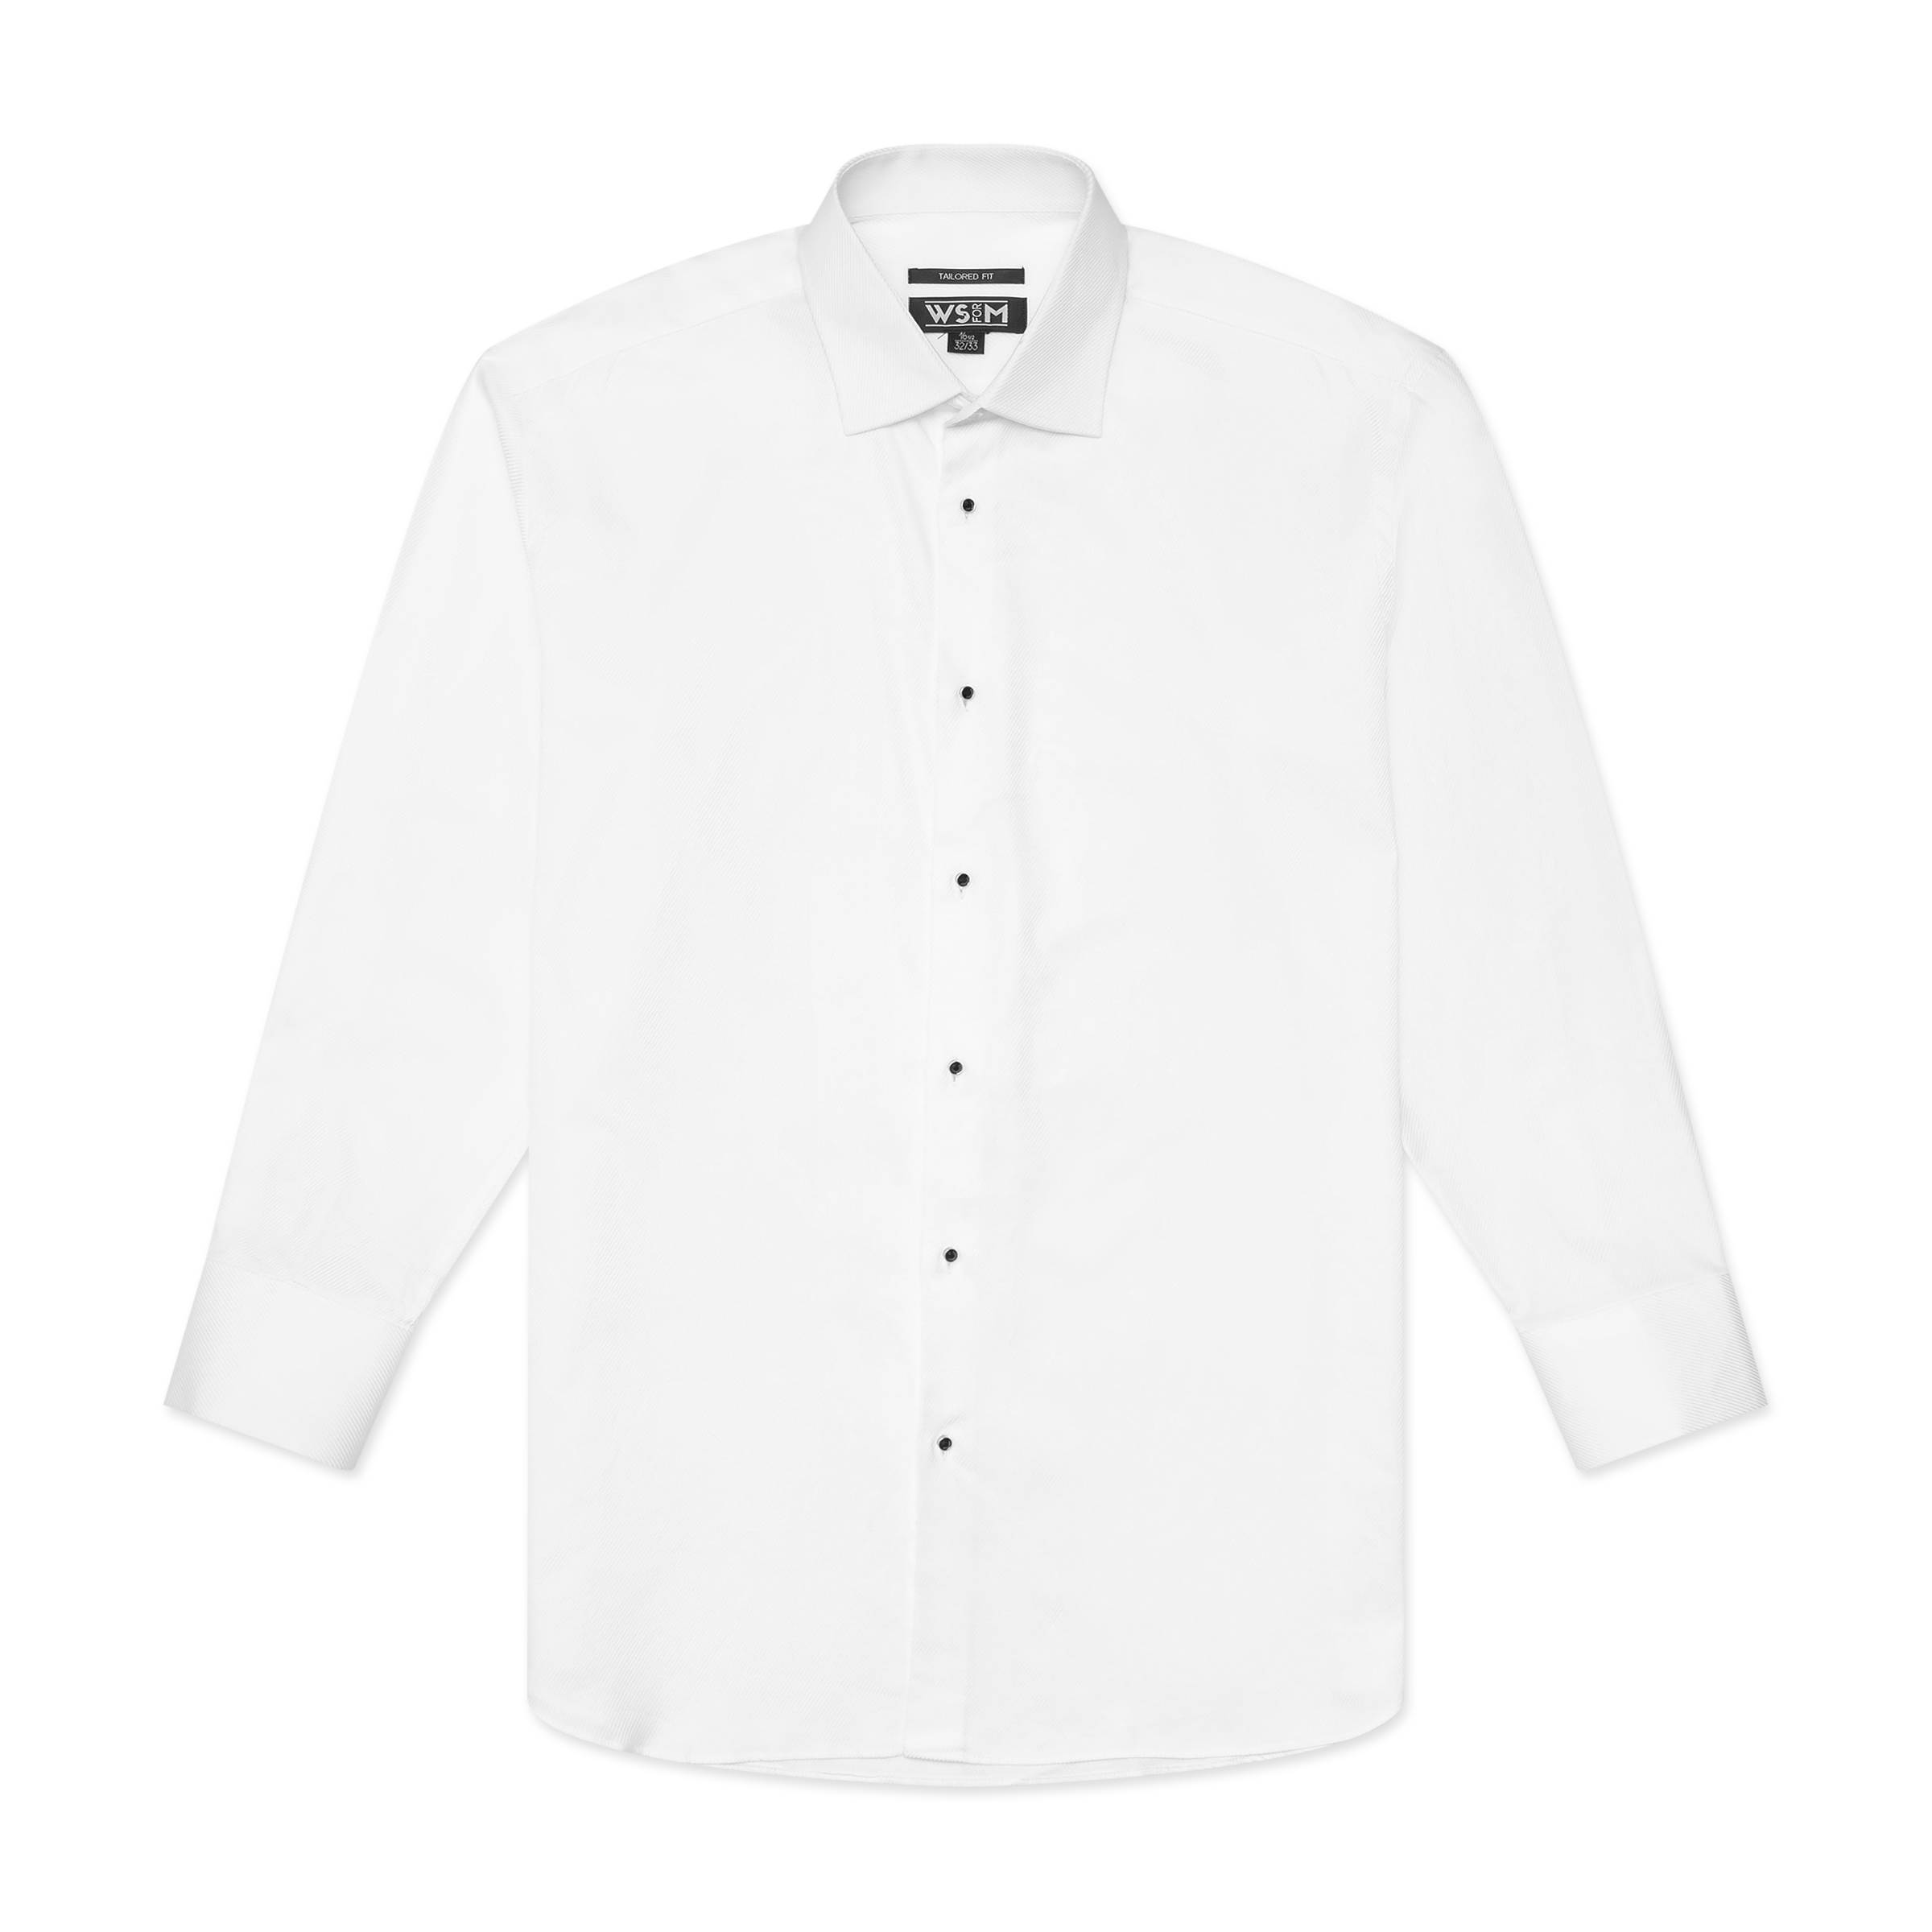 shirt product photography